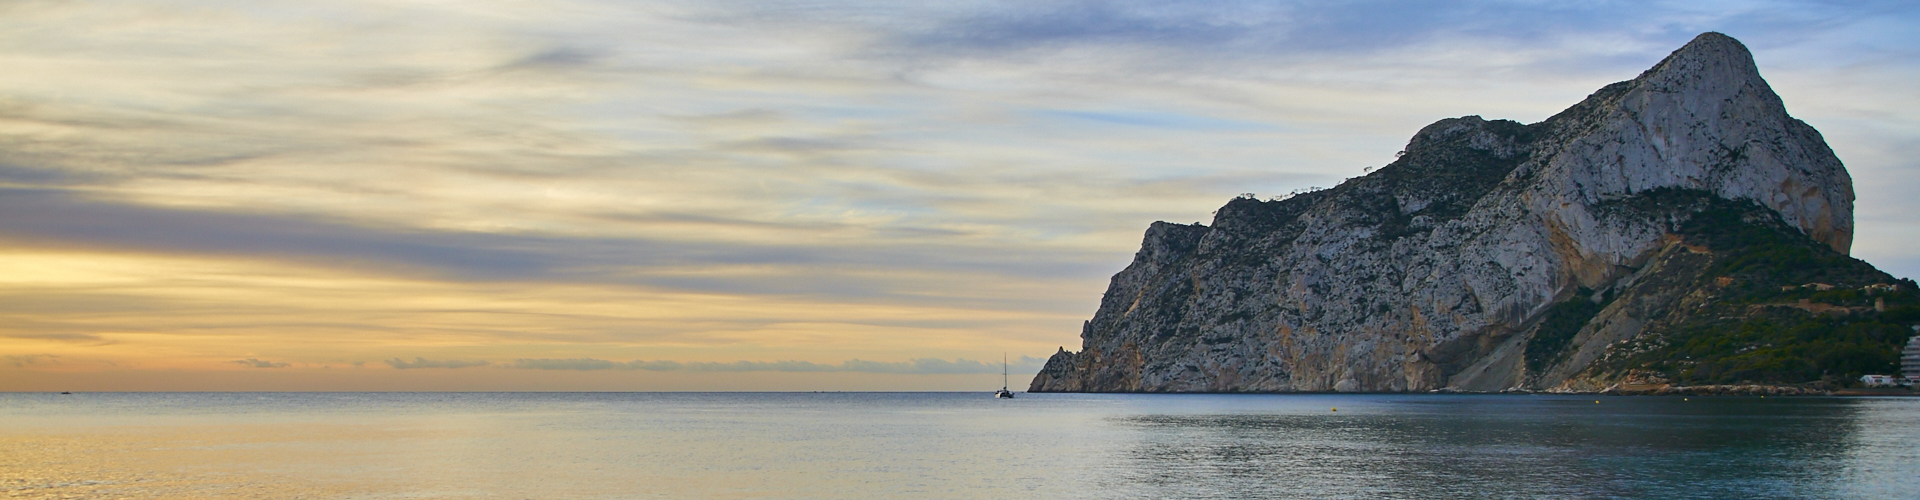 Ifach in Calpe